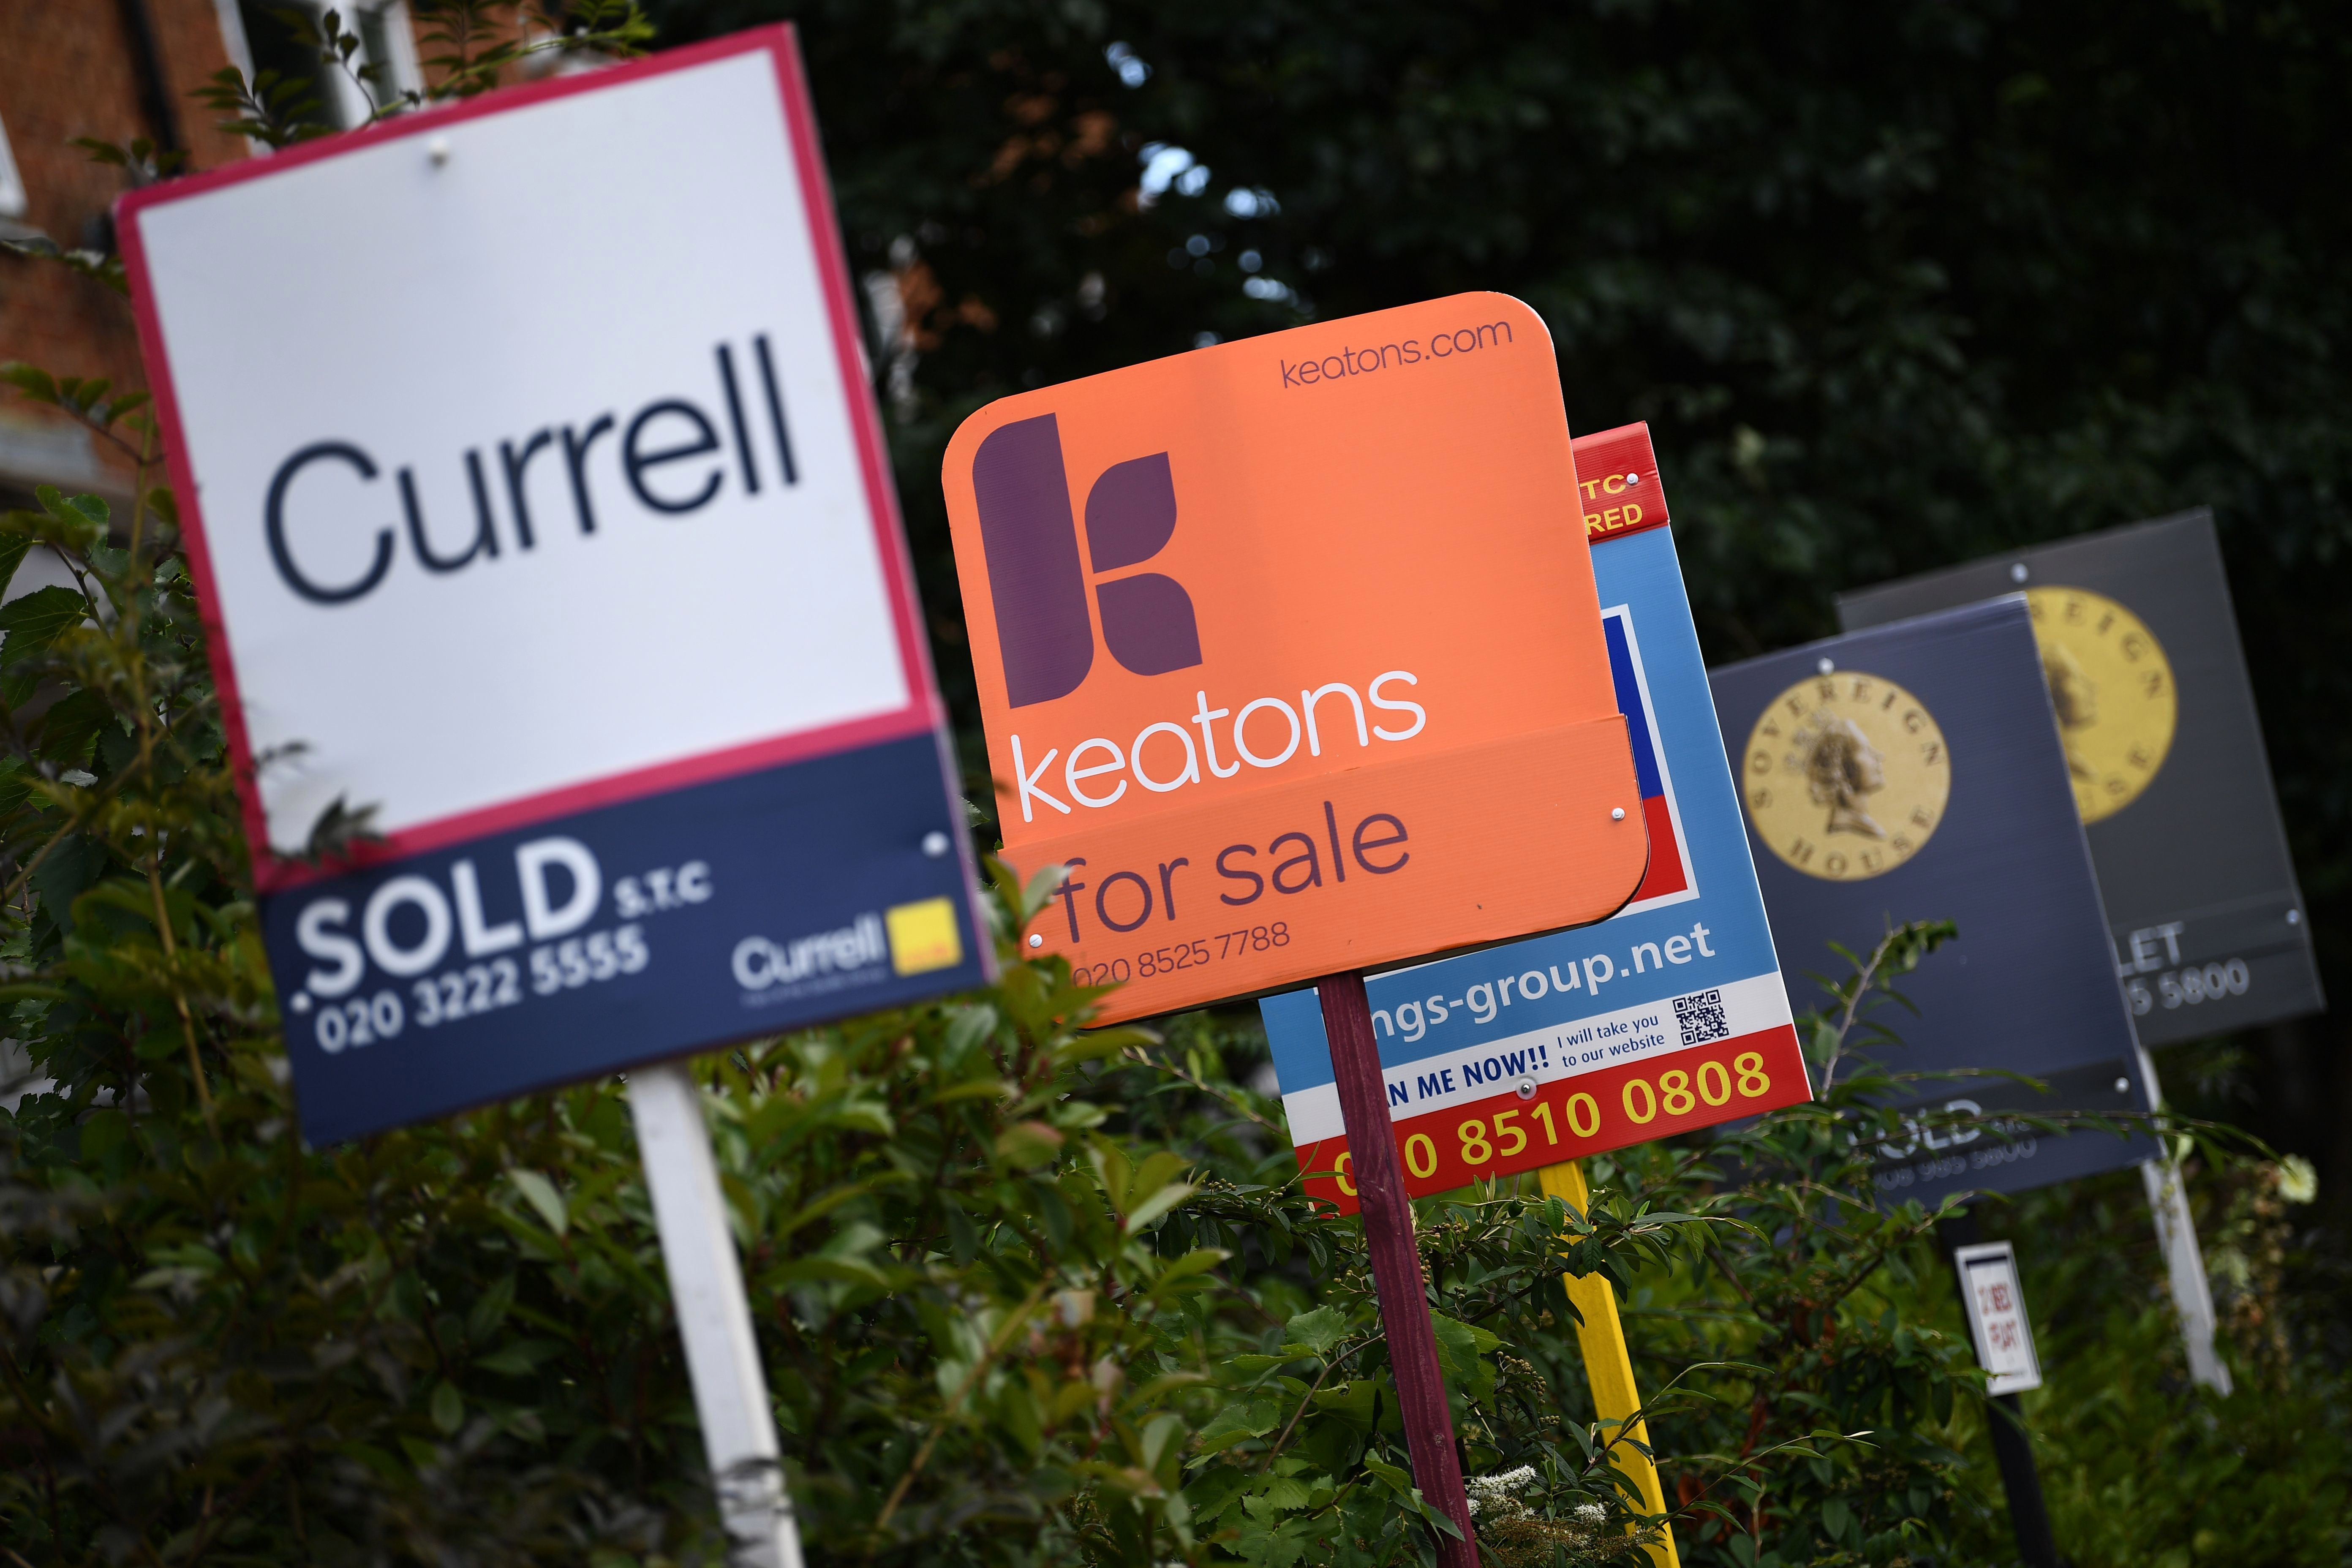 House prices have jumped again this month following Brexit